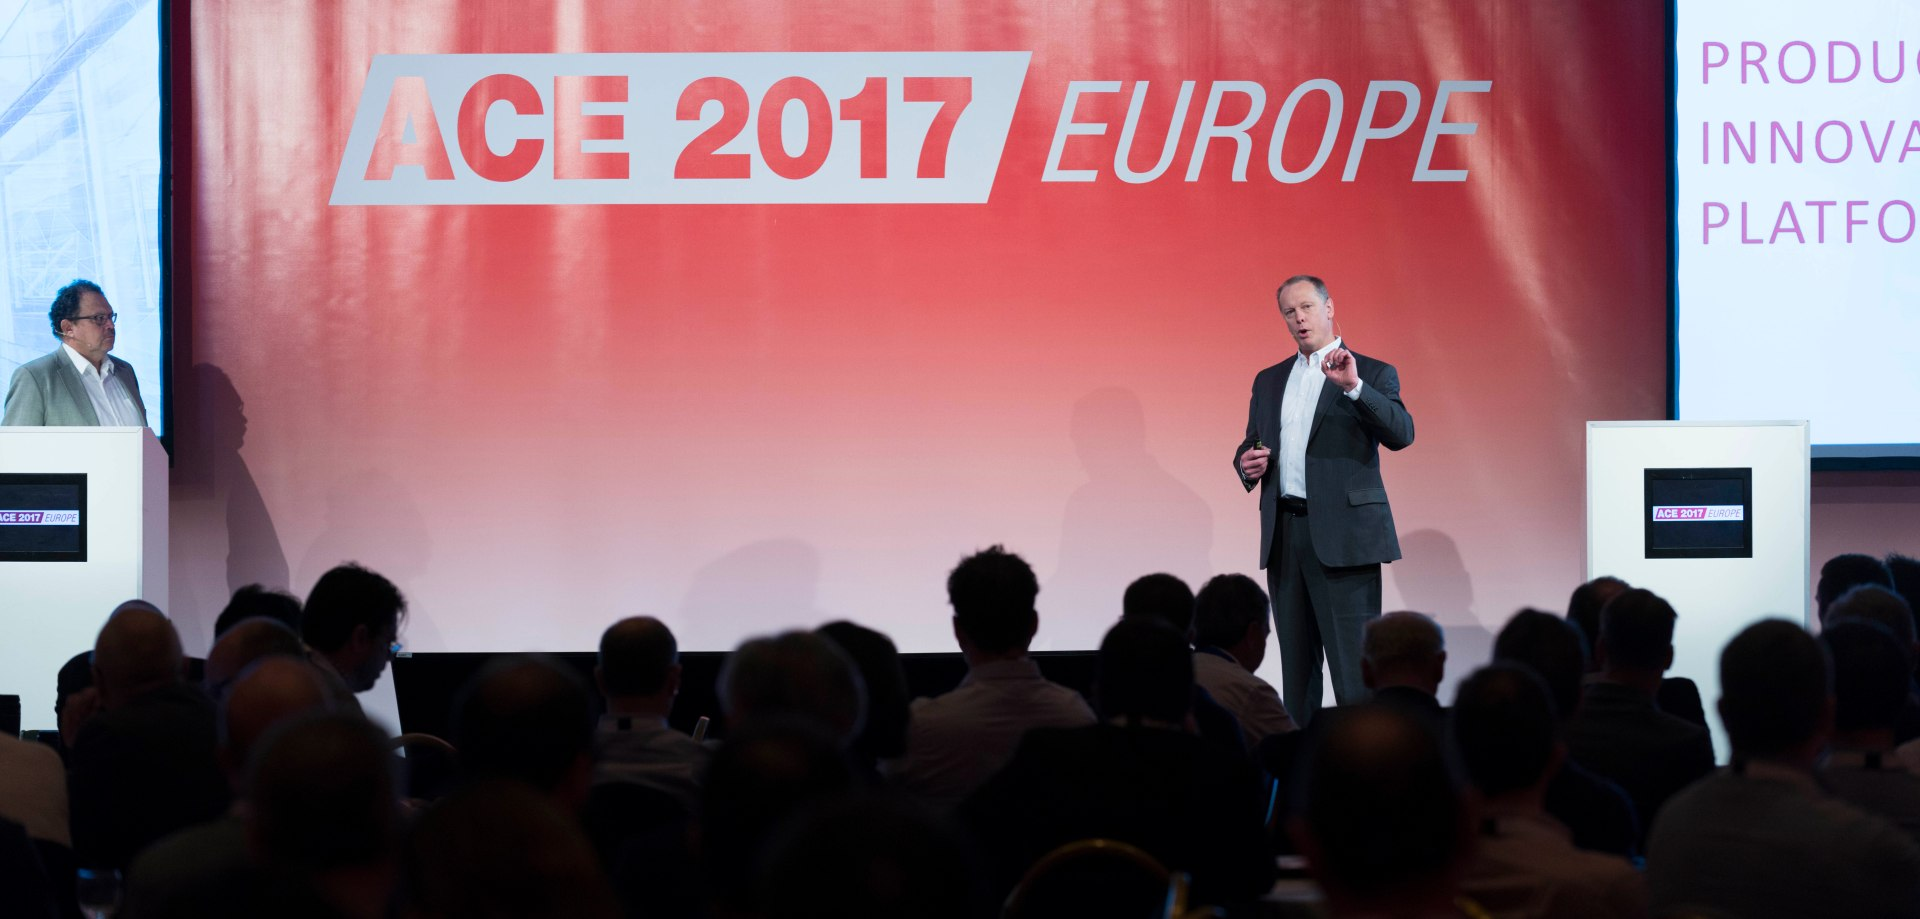 ACE 2017 Europe Tuesday Peter Schroer presents